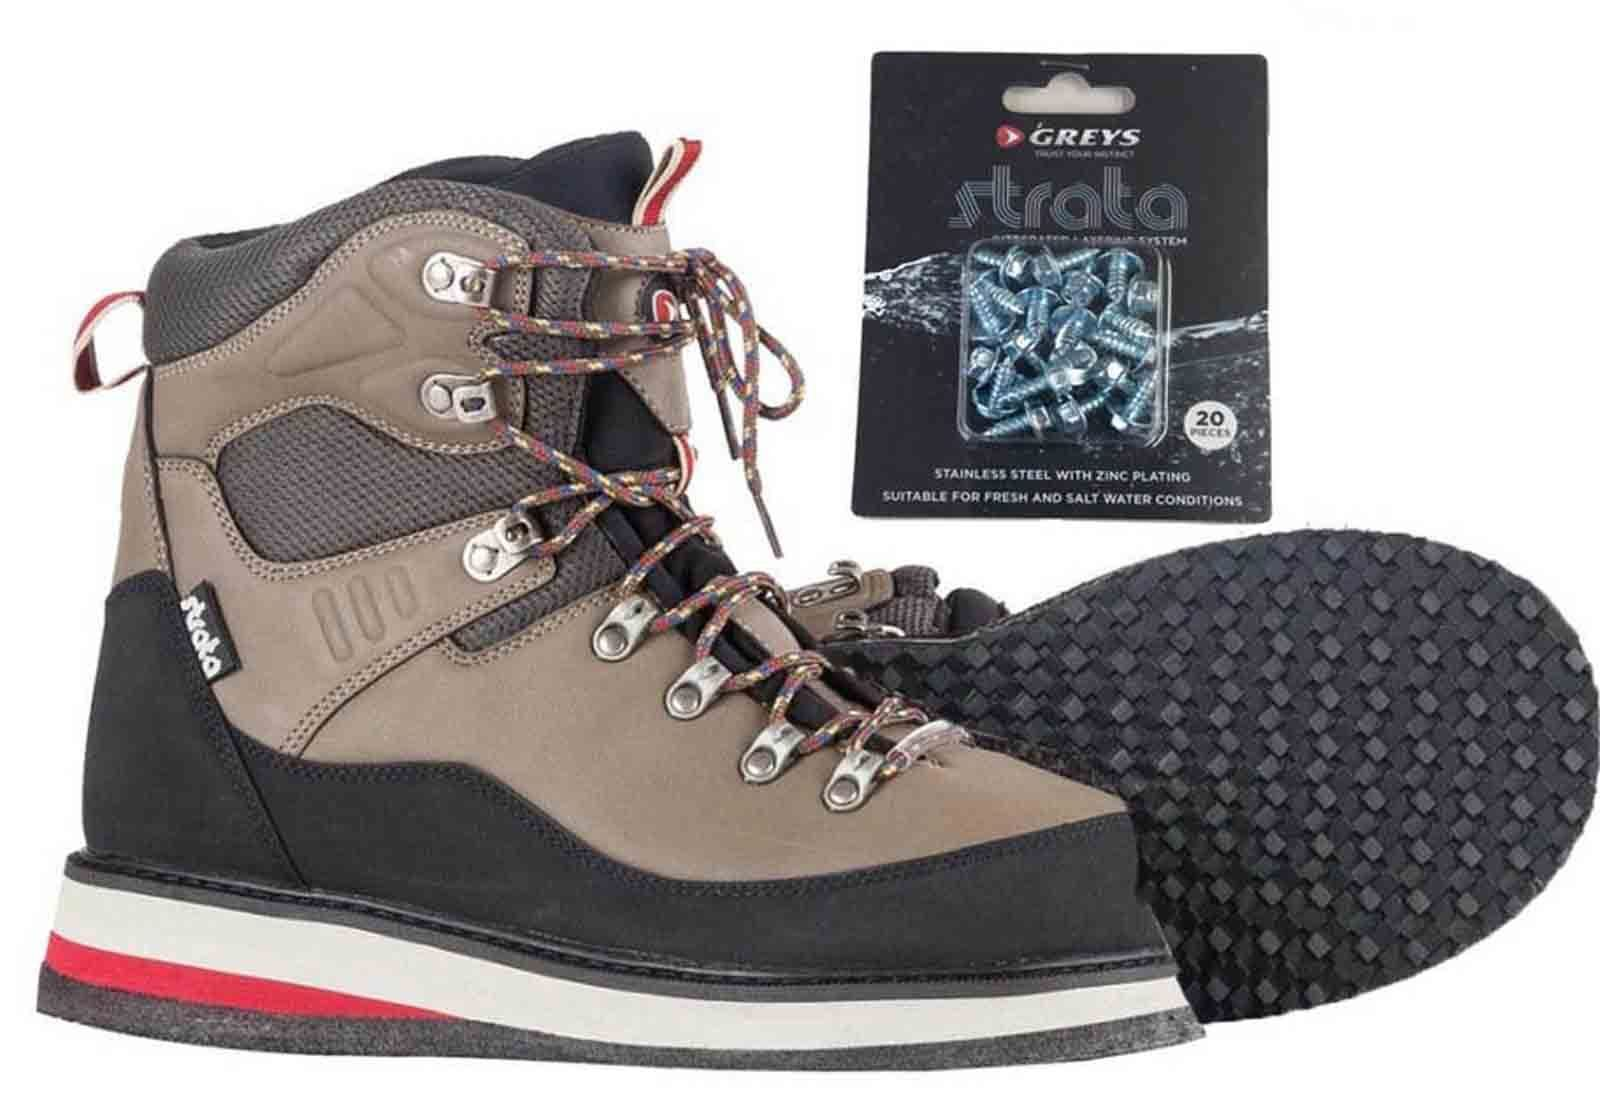 Greys Strata CTX Rubber Sole Durable Wading Fishing